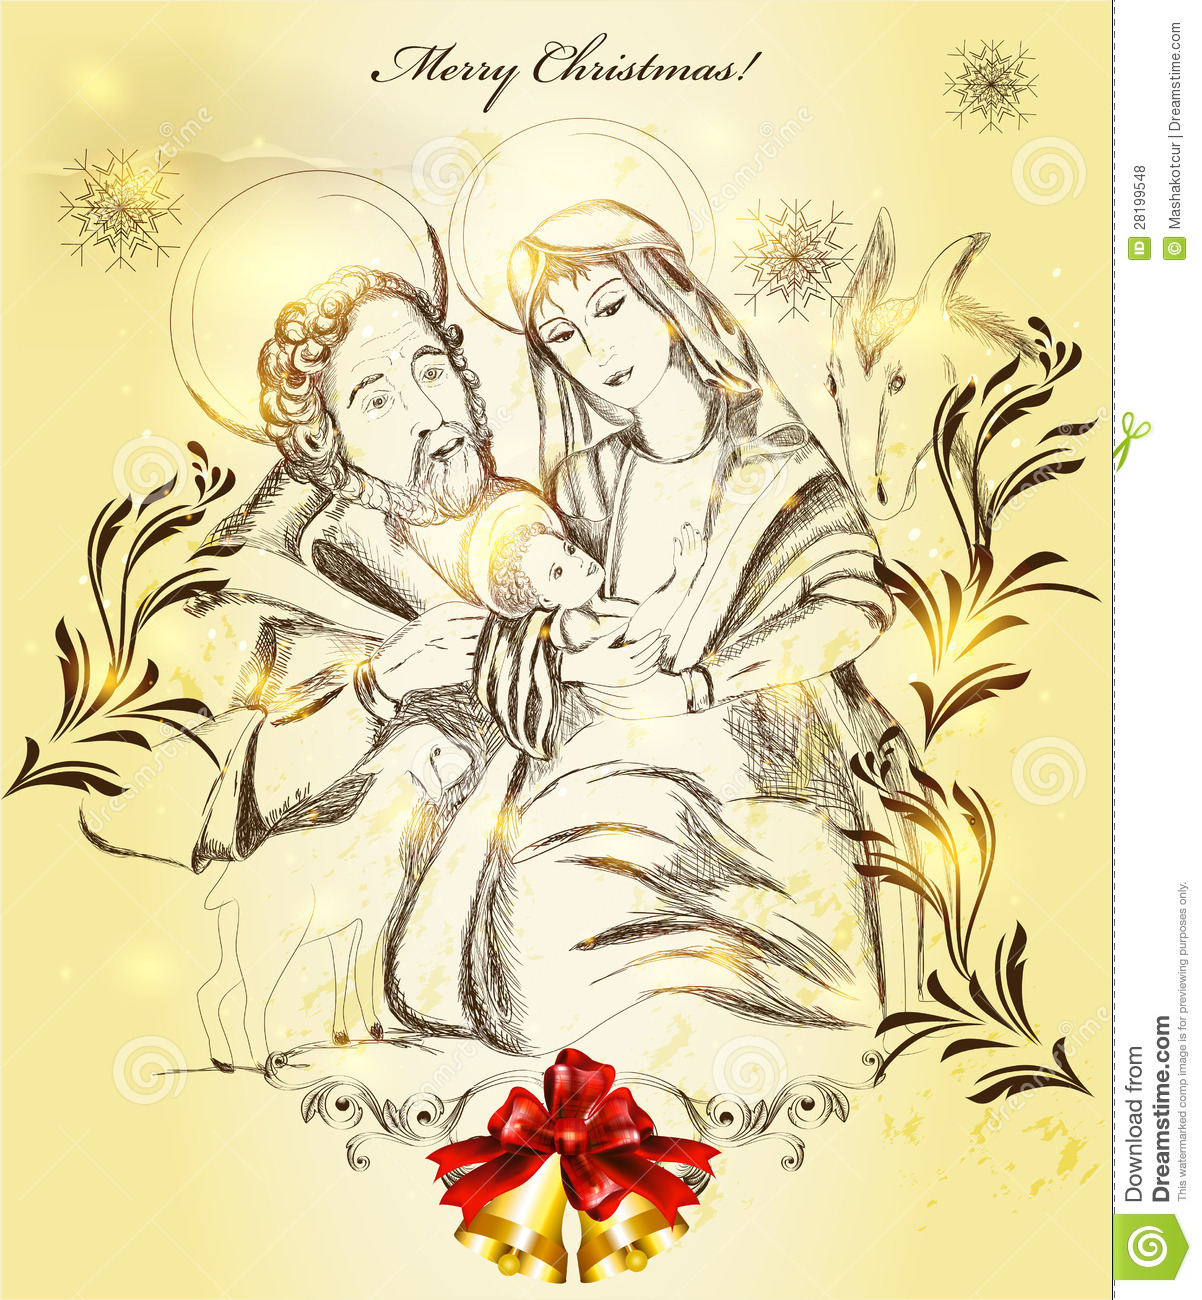 Christmas greeting card with holy family stock vector christmas greeting card with holy family kristyandbryce Image collections